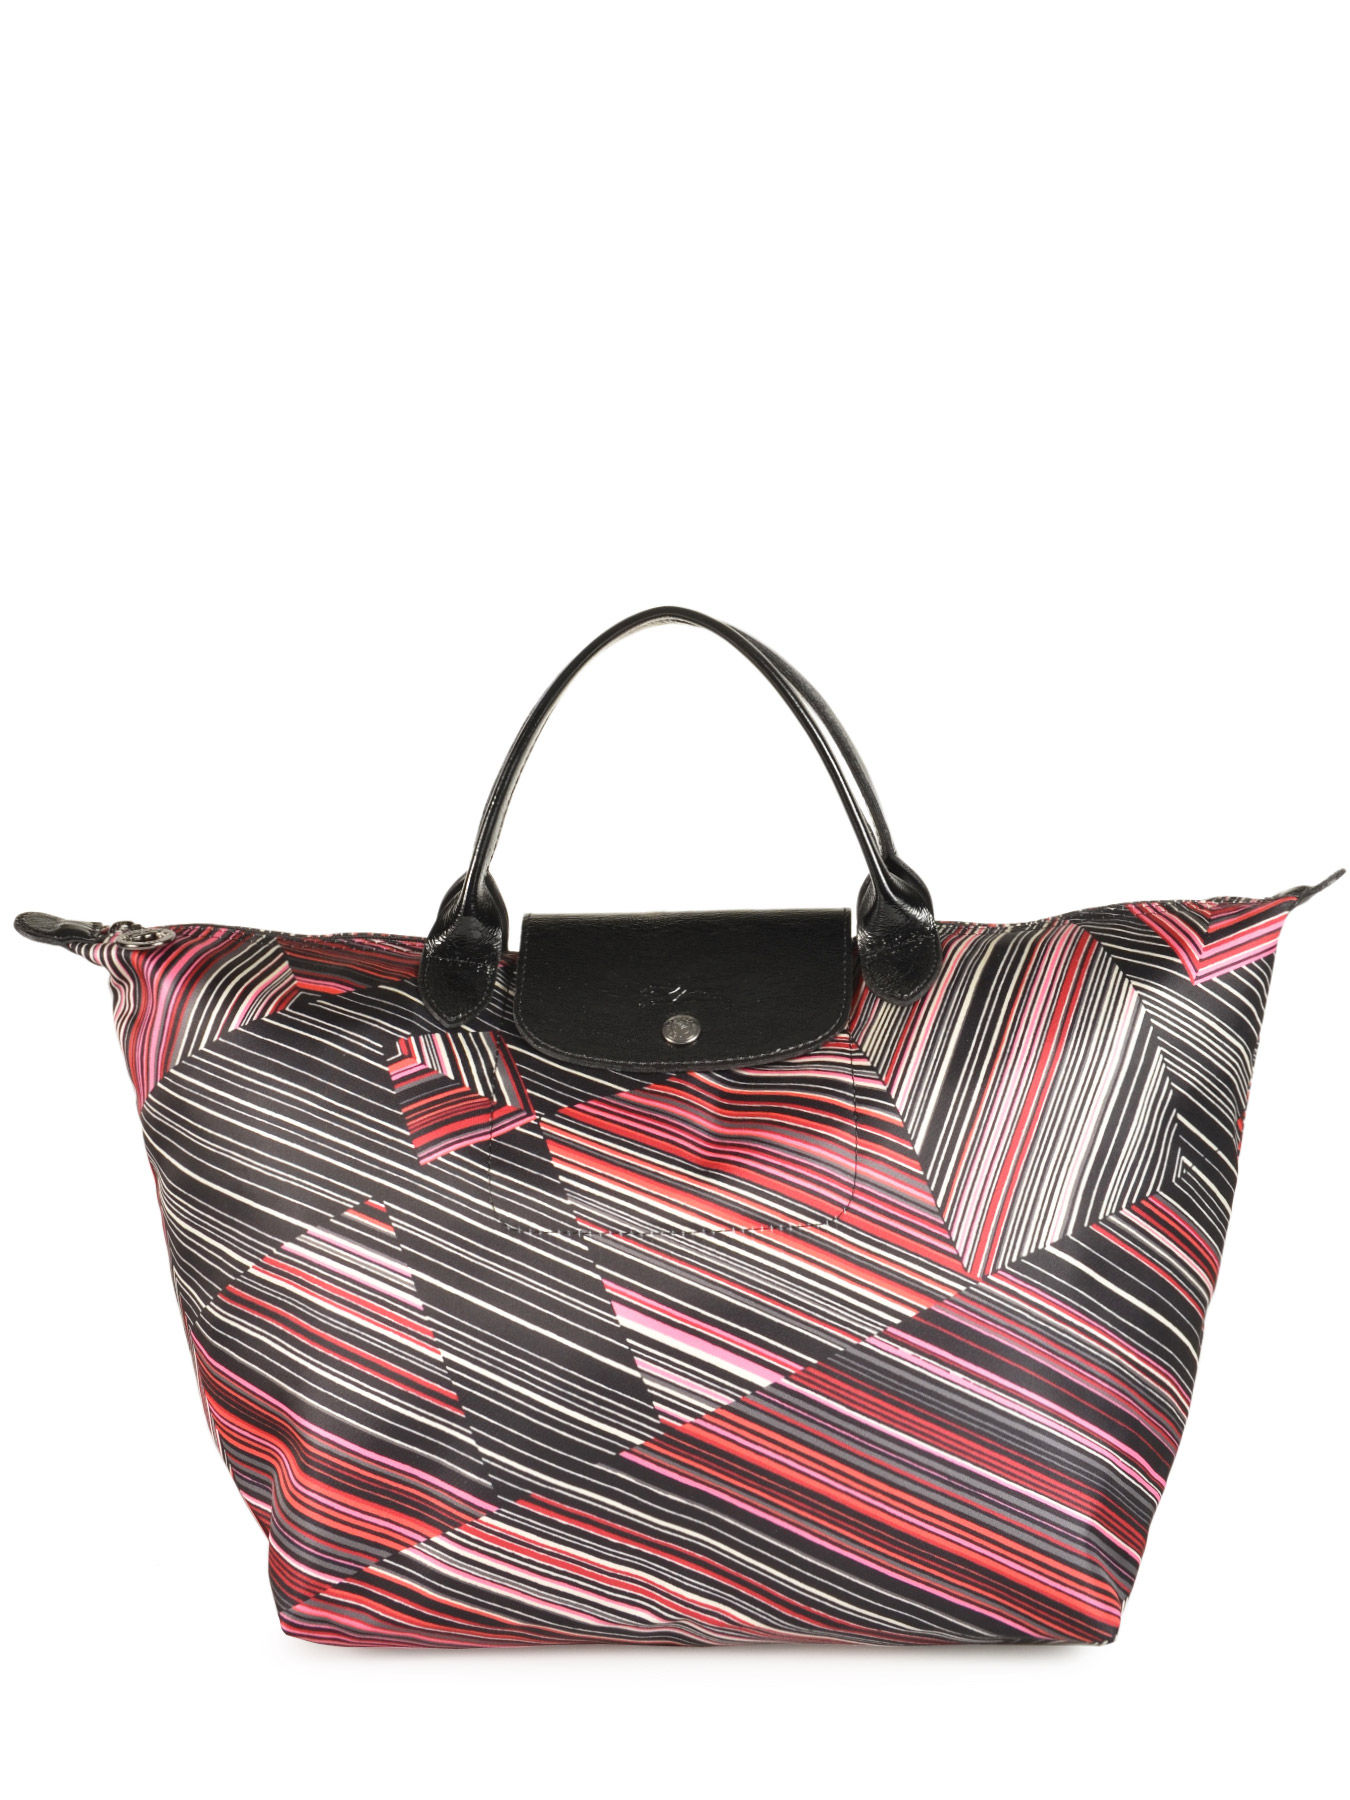 Edisac Art Port Be Longchamp Sac Main Op Sur U1IgYq